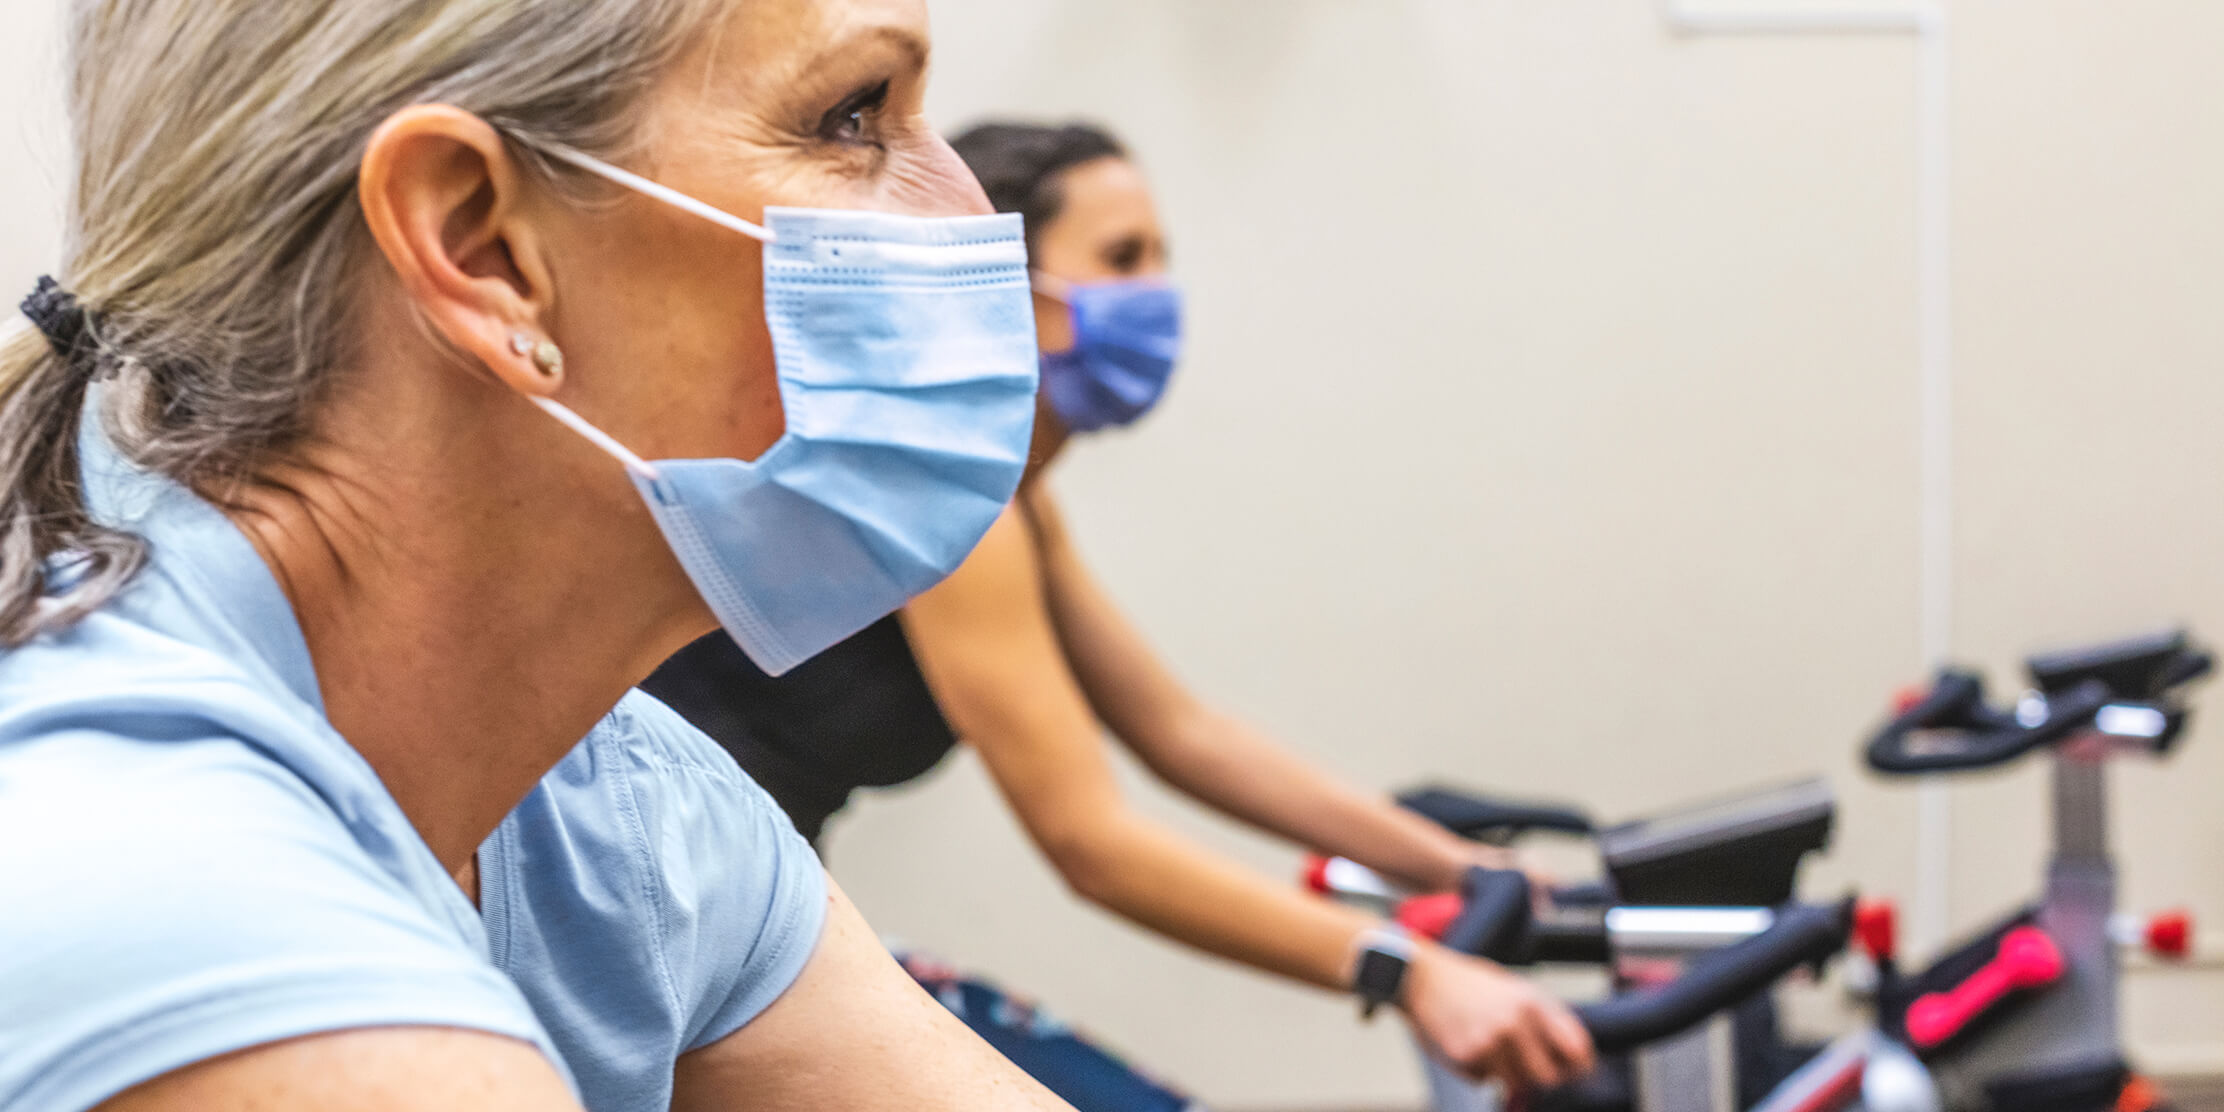 Photo for Mayo Clinic Q and A: 5 elements of a balanced fitness routine